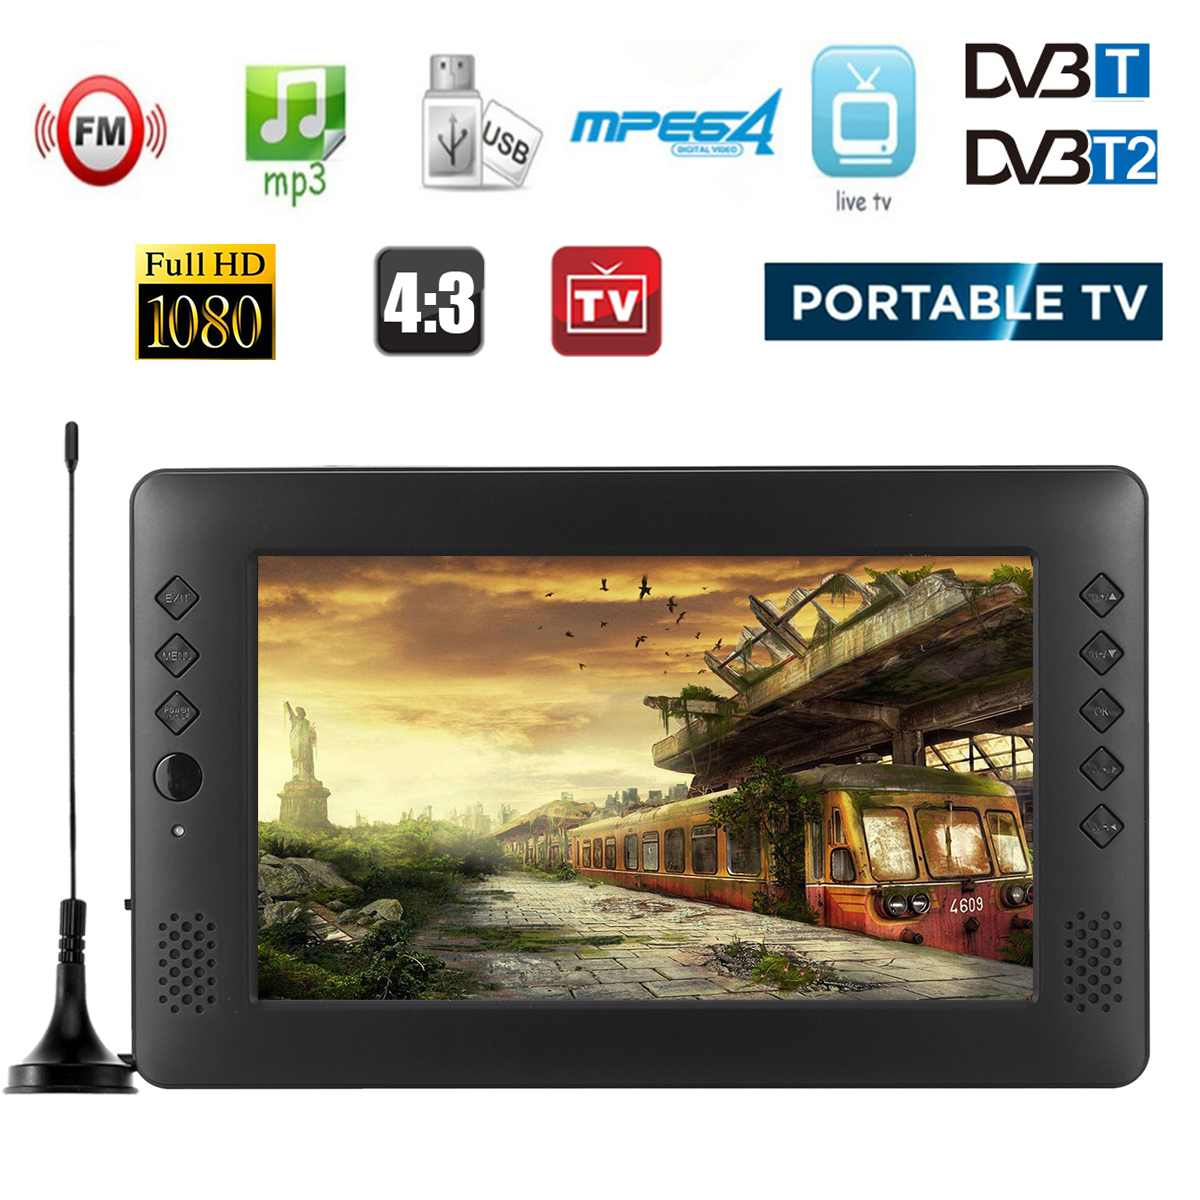 12V 9 inch HD Portable Mini WiFi Digital and Analog TV DVB-T2 DVB-T DTV ATV Car Smart Television USB TF Card MP4 Audio Video